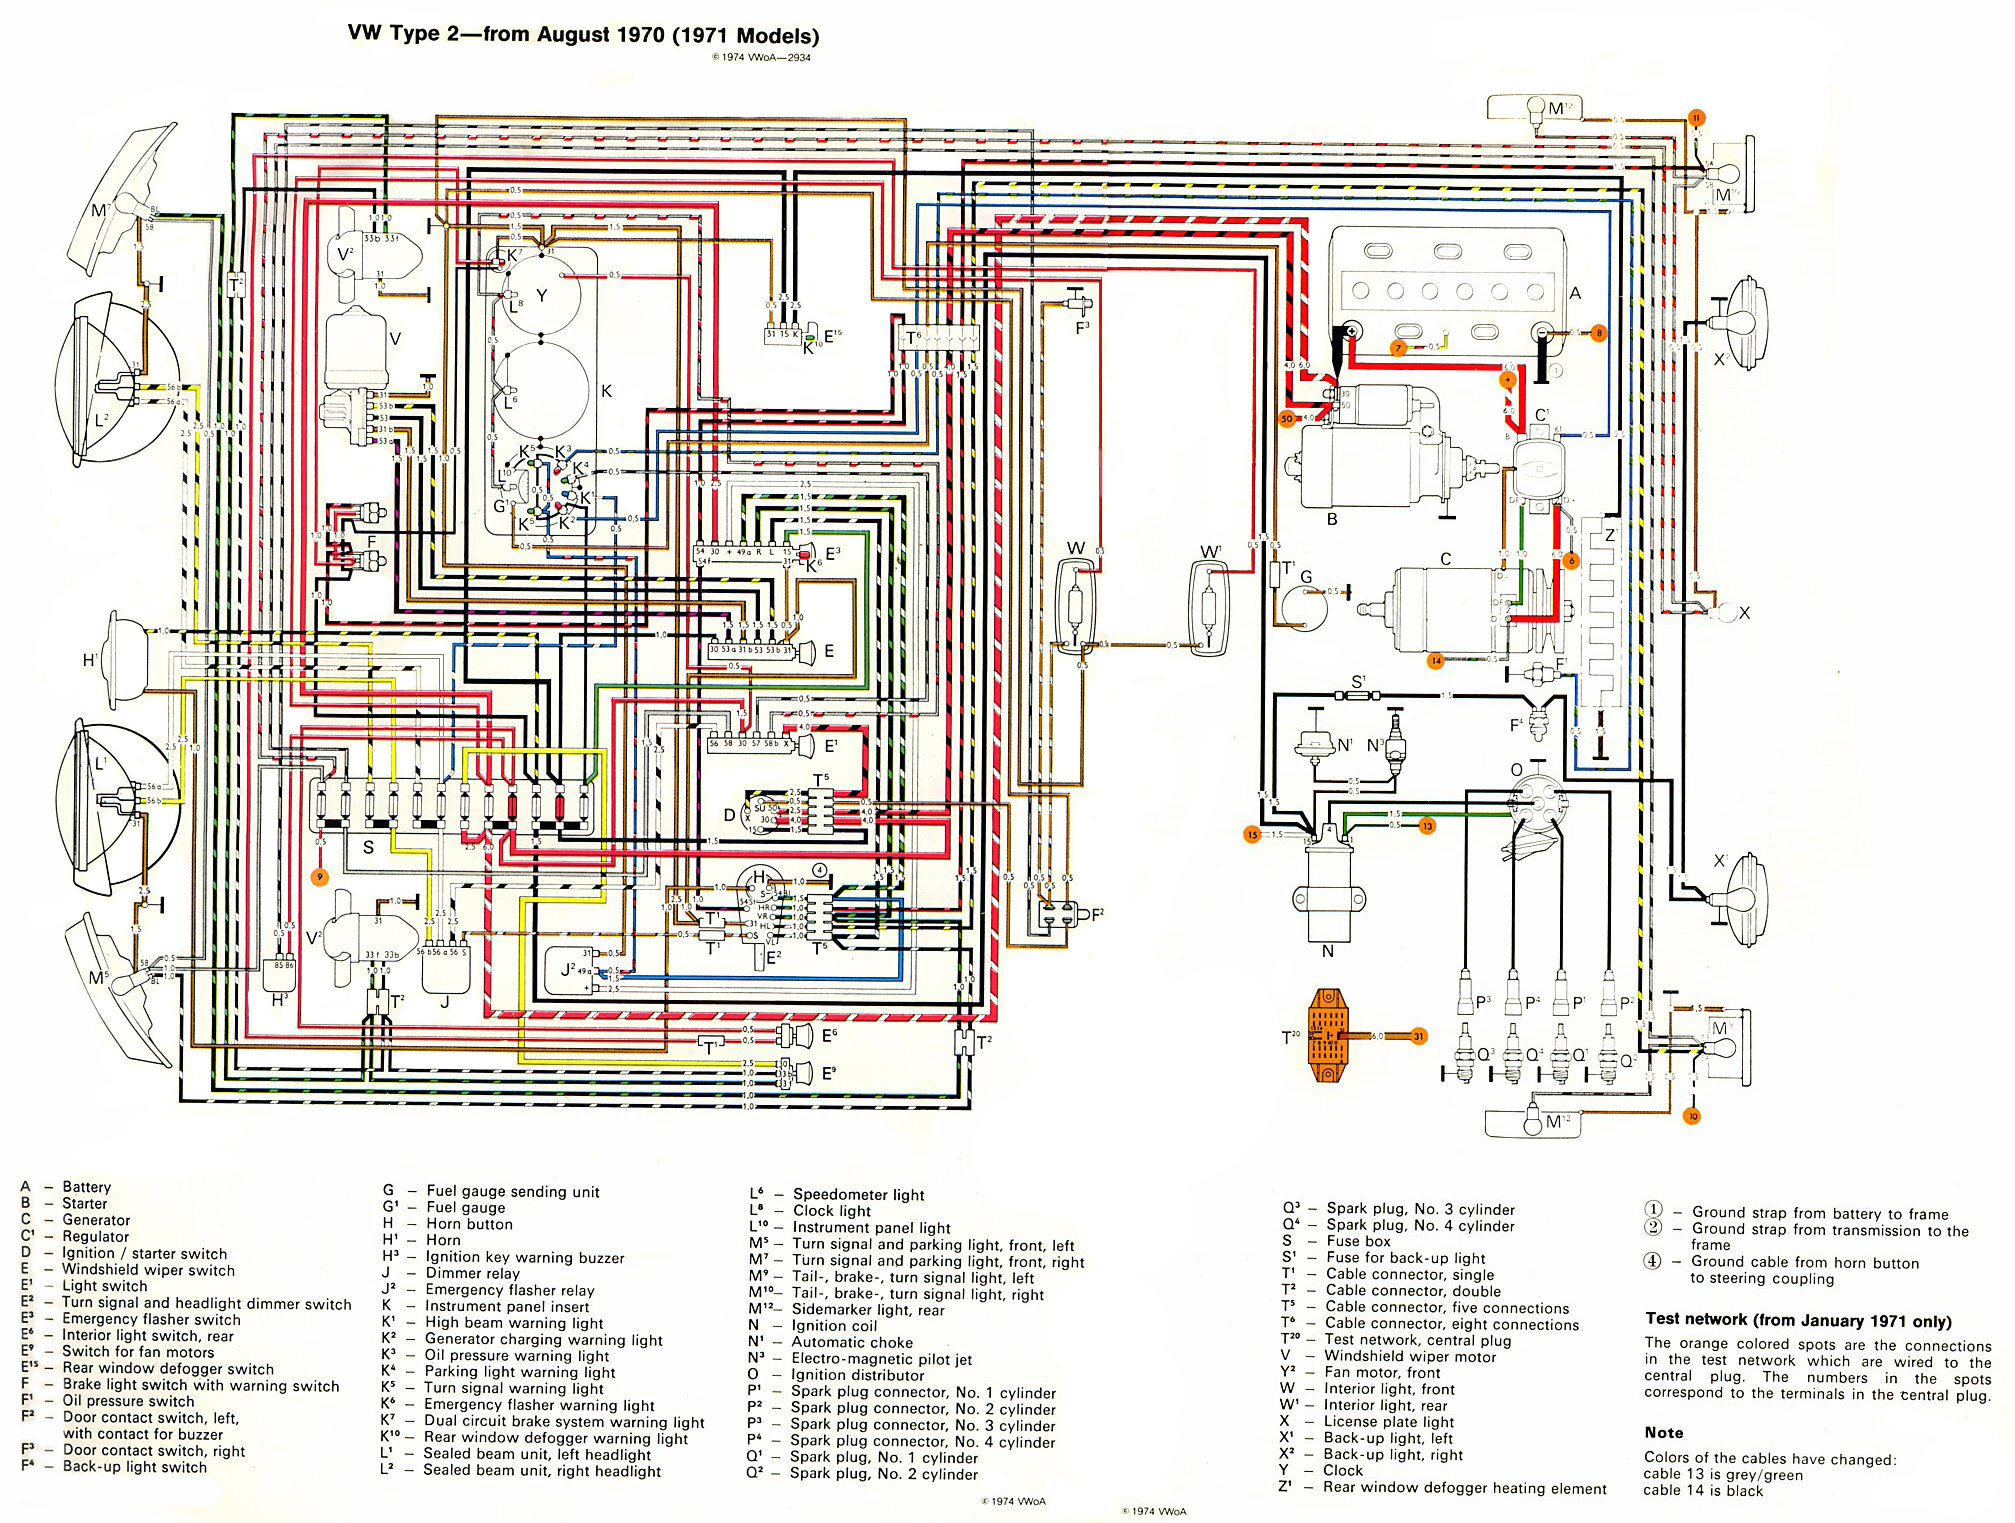 baybus_71_fixed bad boy buggy wiring diagram 36 volt ezgo wiring diagram 1997 vw golf wiring diagram at cita.asia